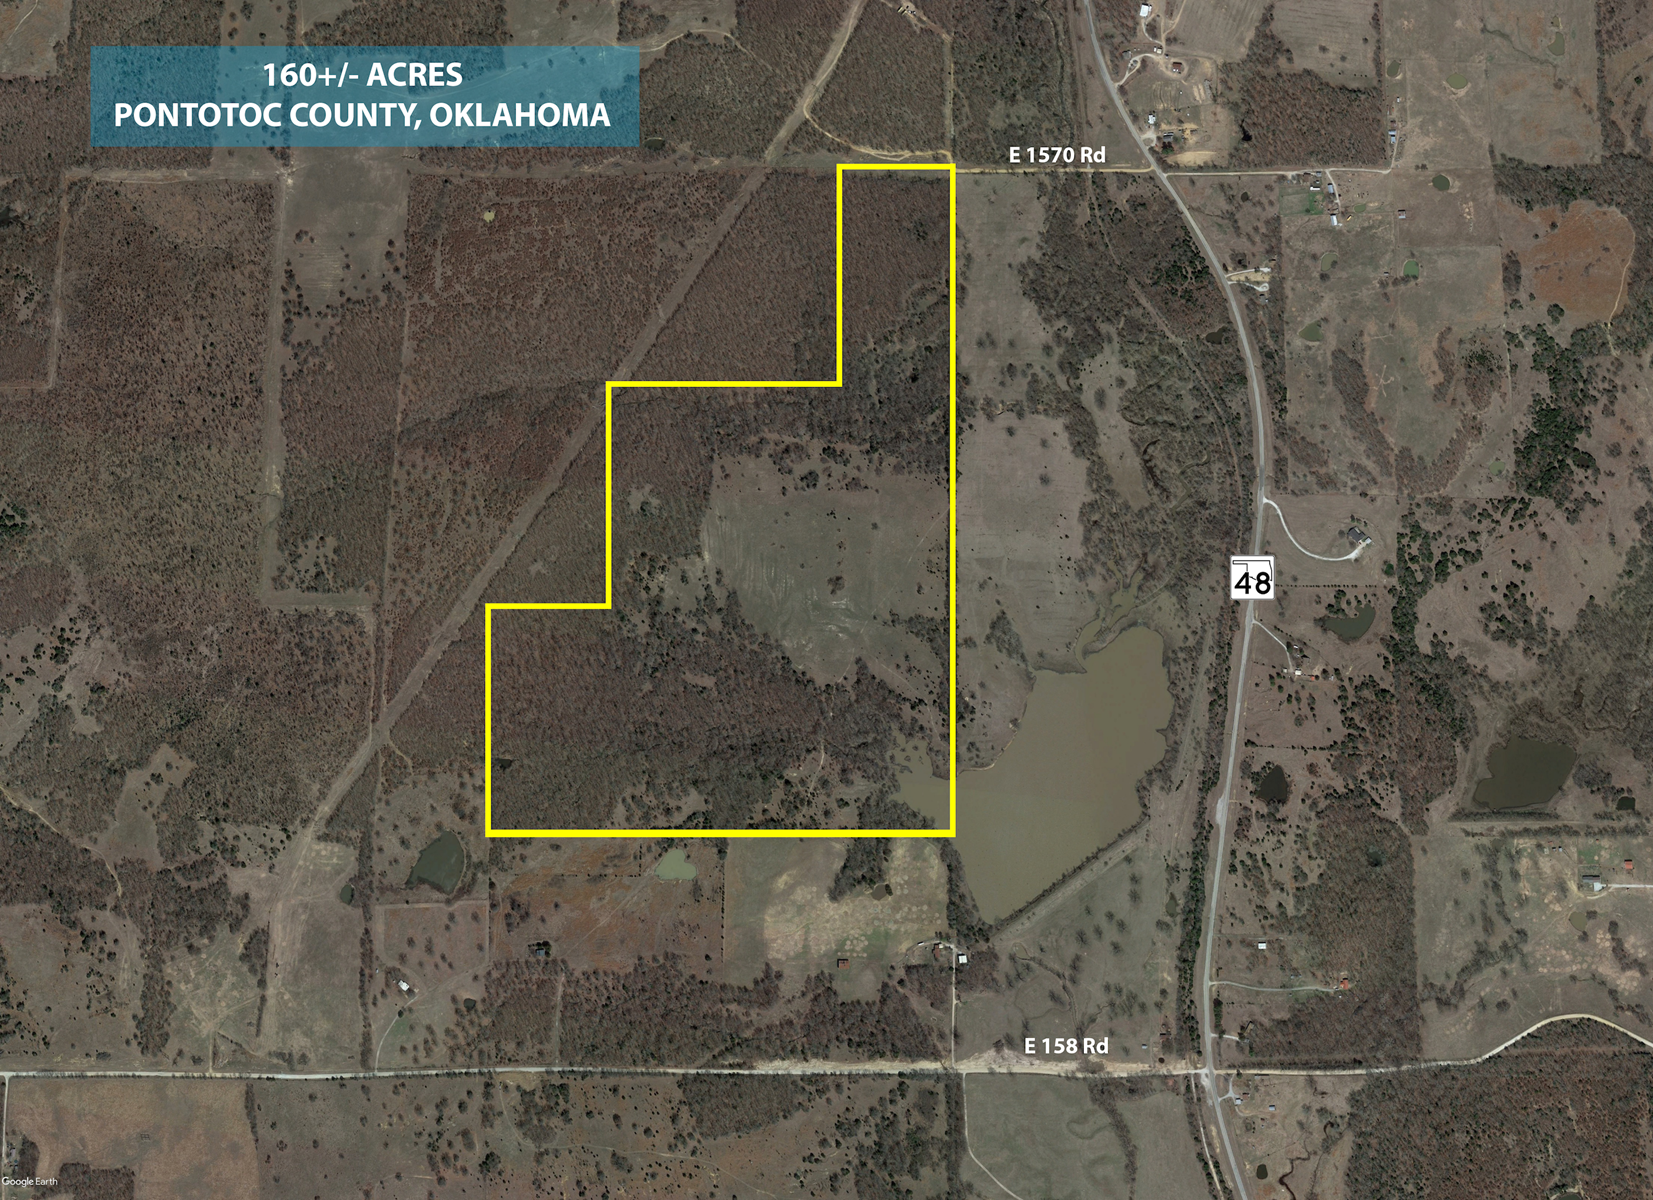 LAND FOR SALE PONTOTOC COUNTY HUNTING PROPERTY OKLAHOMA